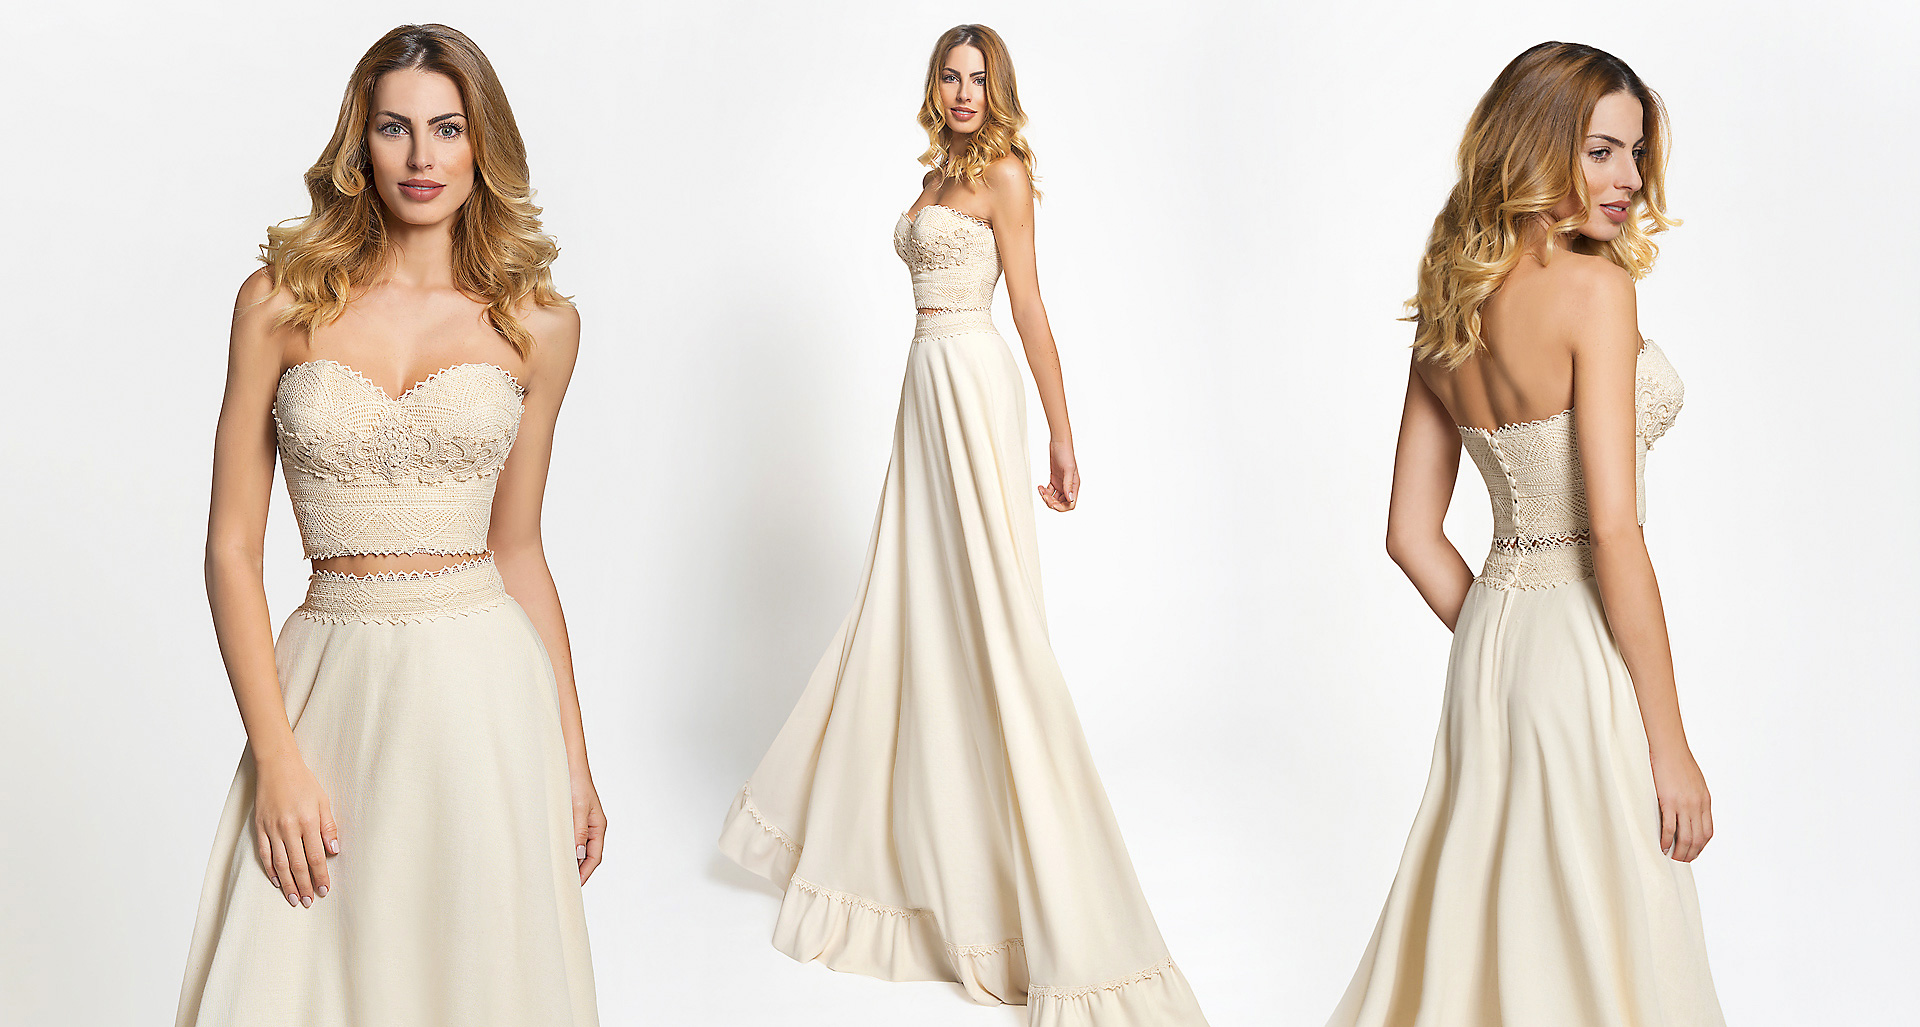 Doris wedding dress from  Hellenic Vintage Crop Top Collection